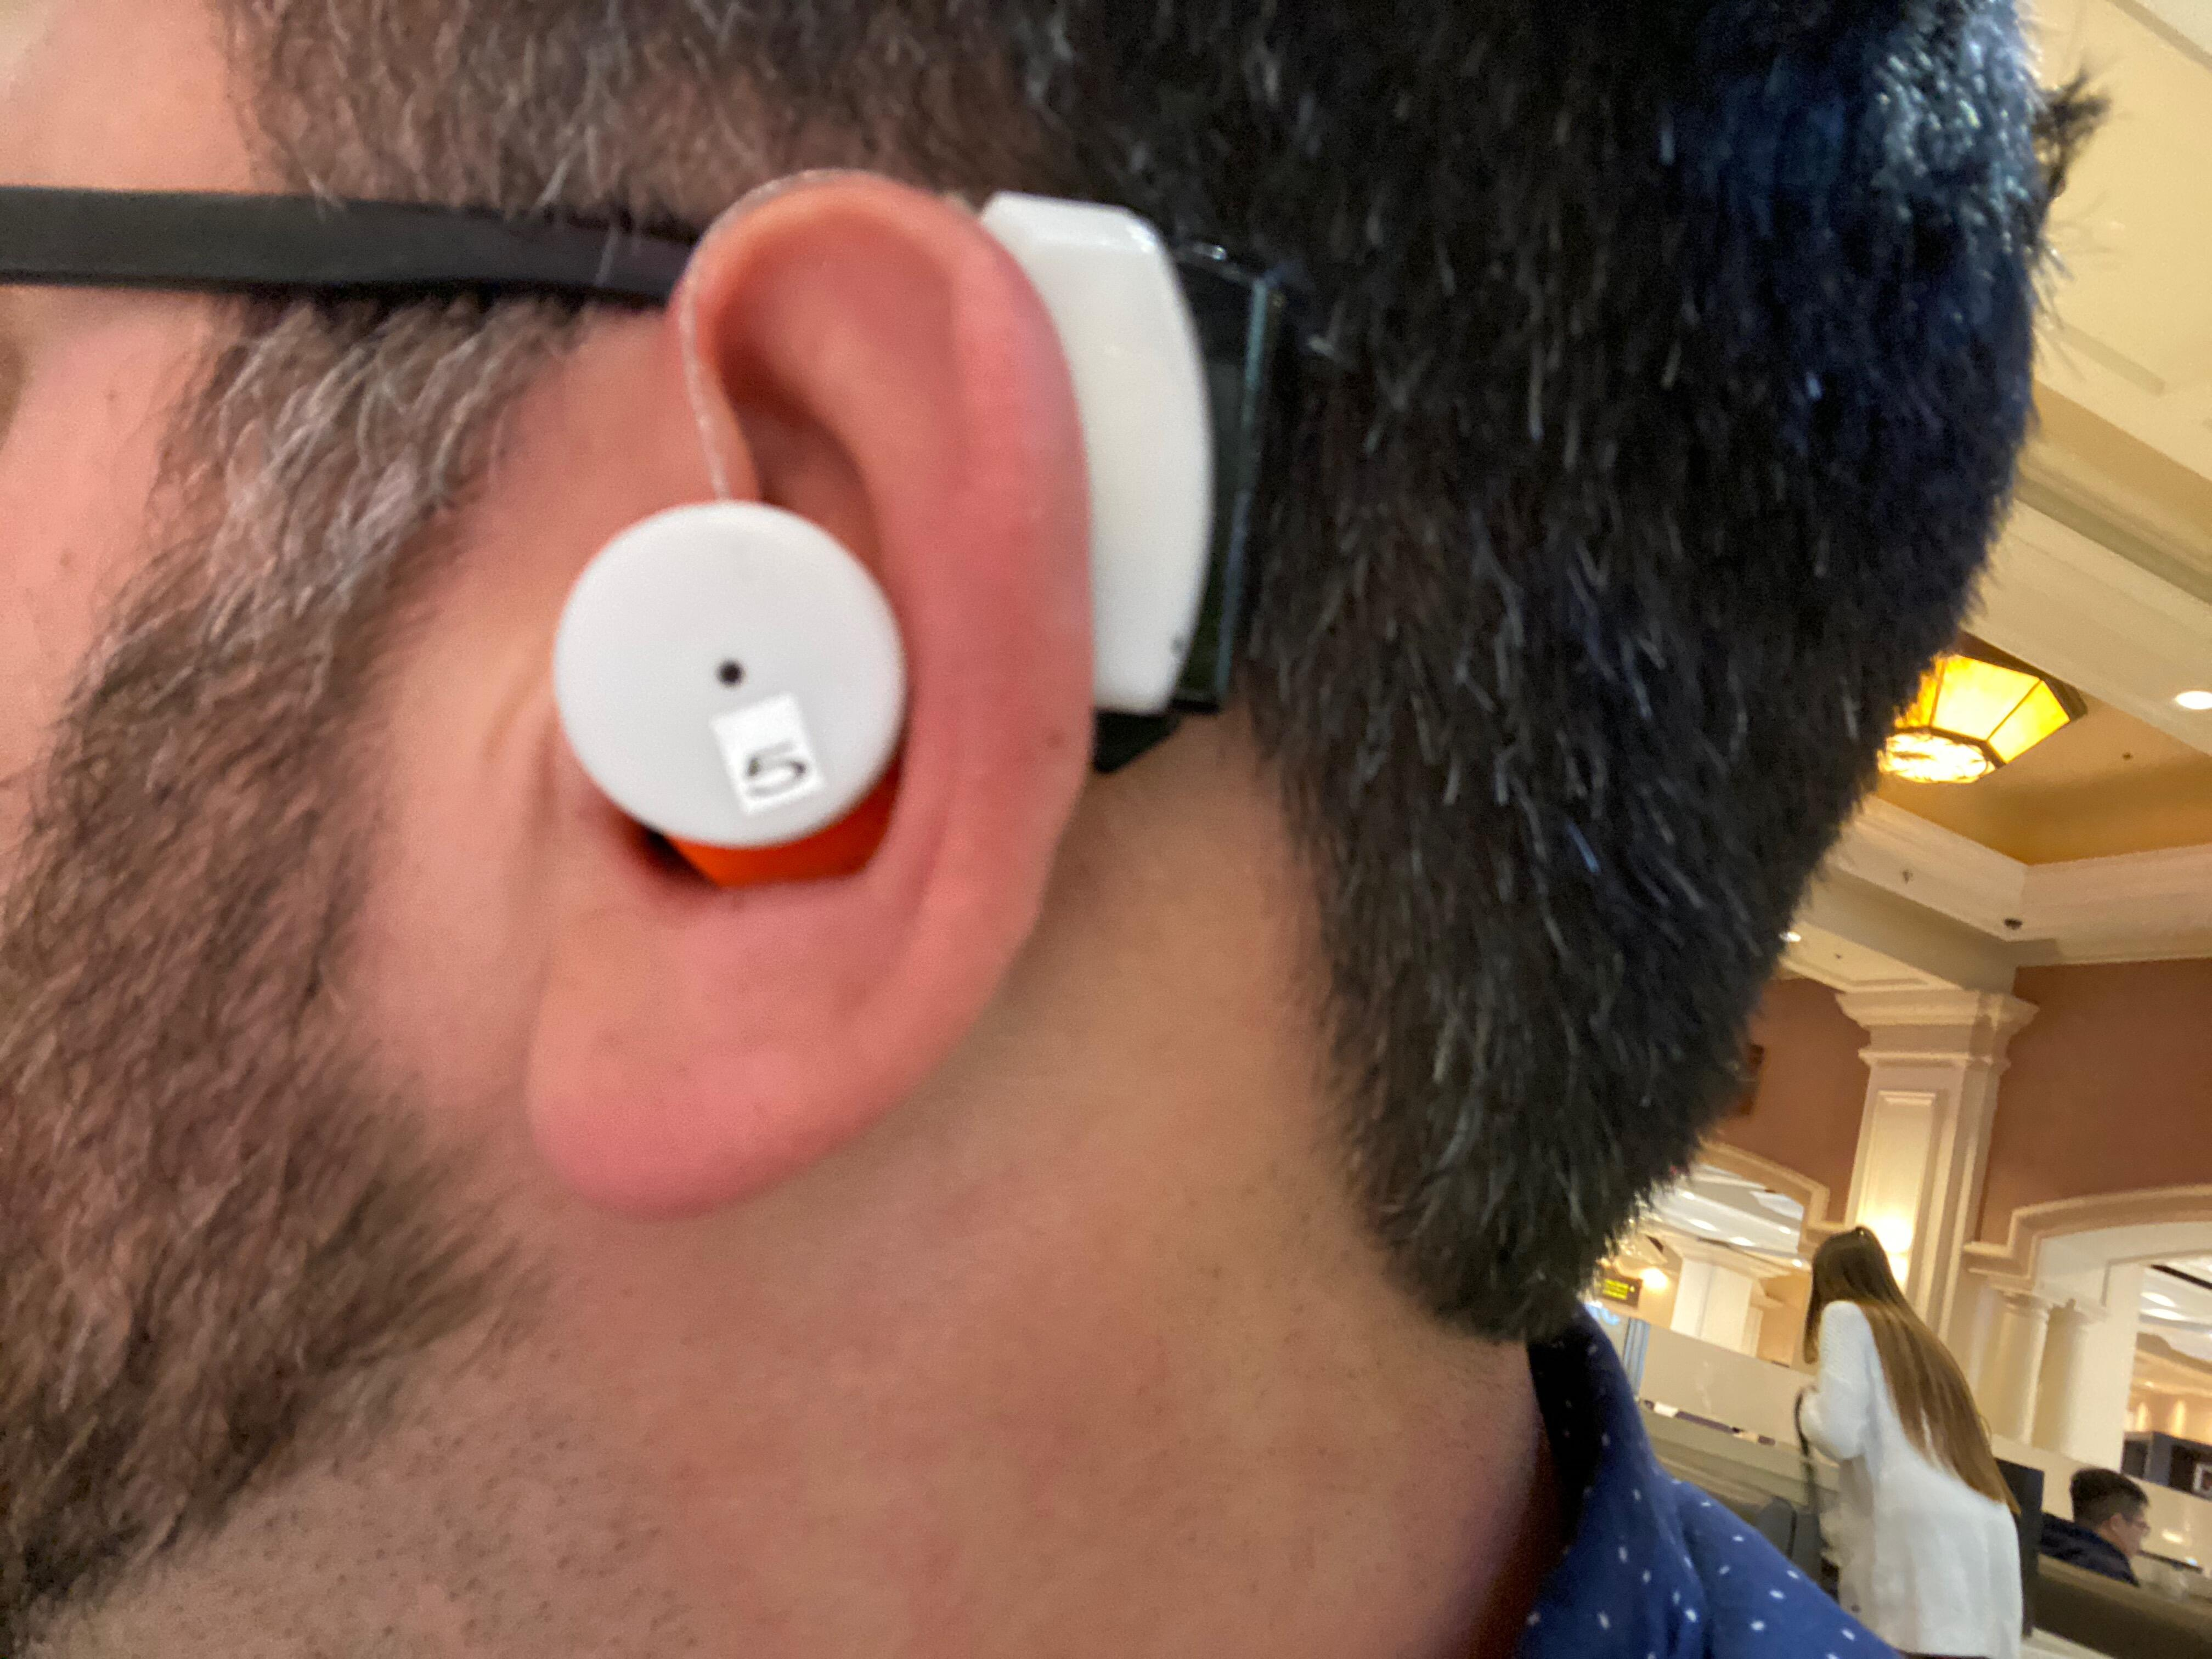 Valencell Blood Pressure Sensing Earbuds